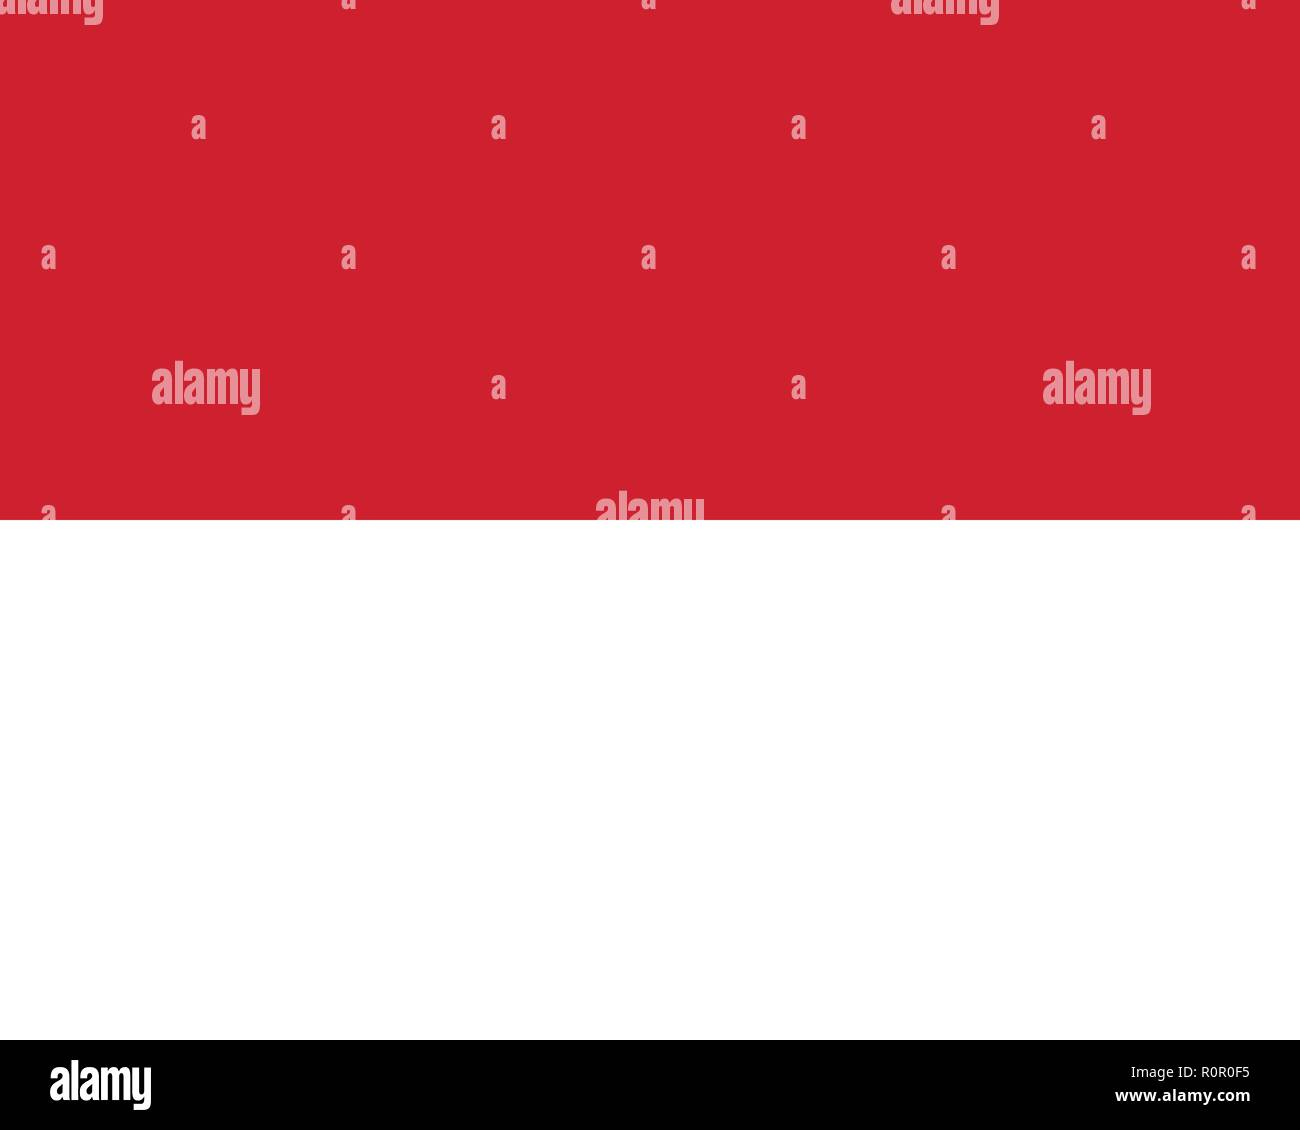 Vector image for Monaco flag. Based on the official and exact Monaco flag dimensions (5:4) & colors (186C and White) - Stock Vector